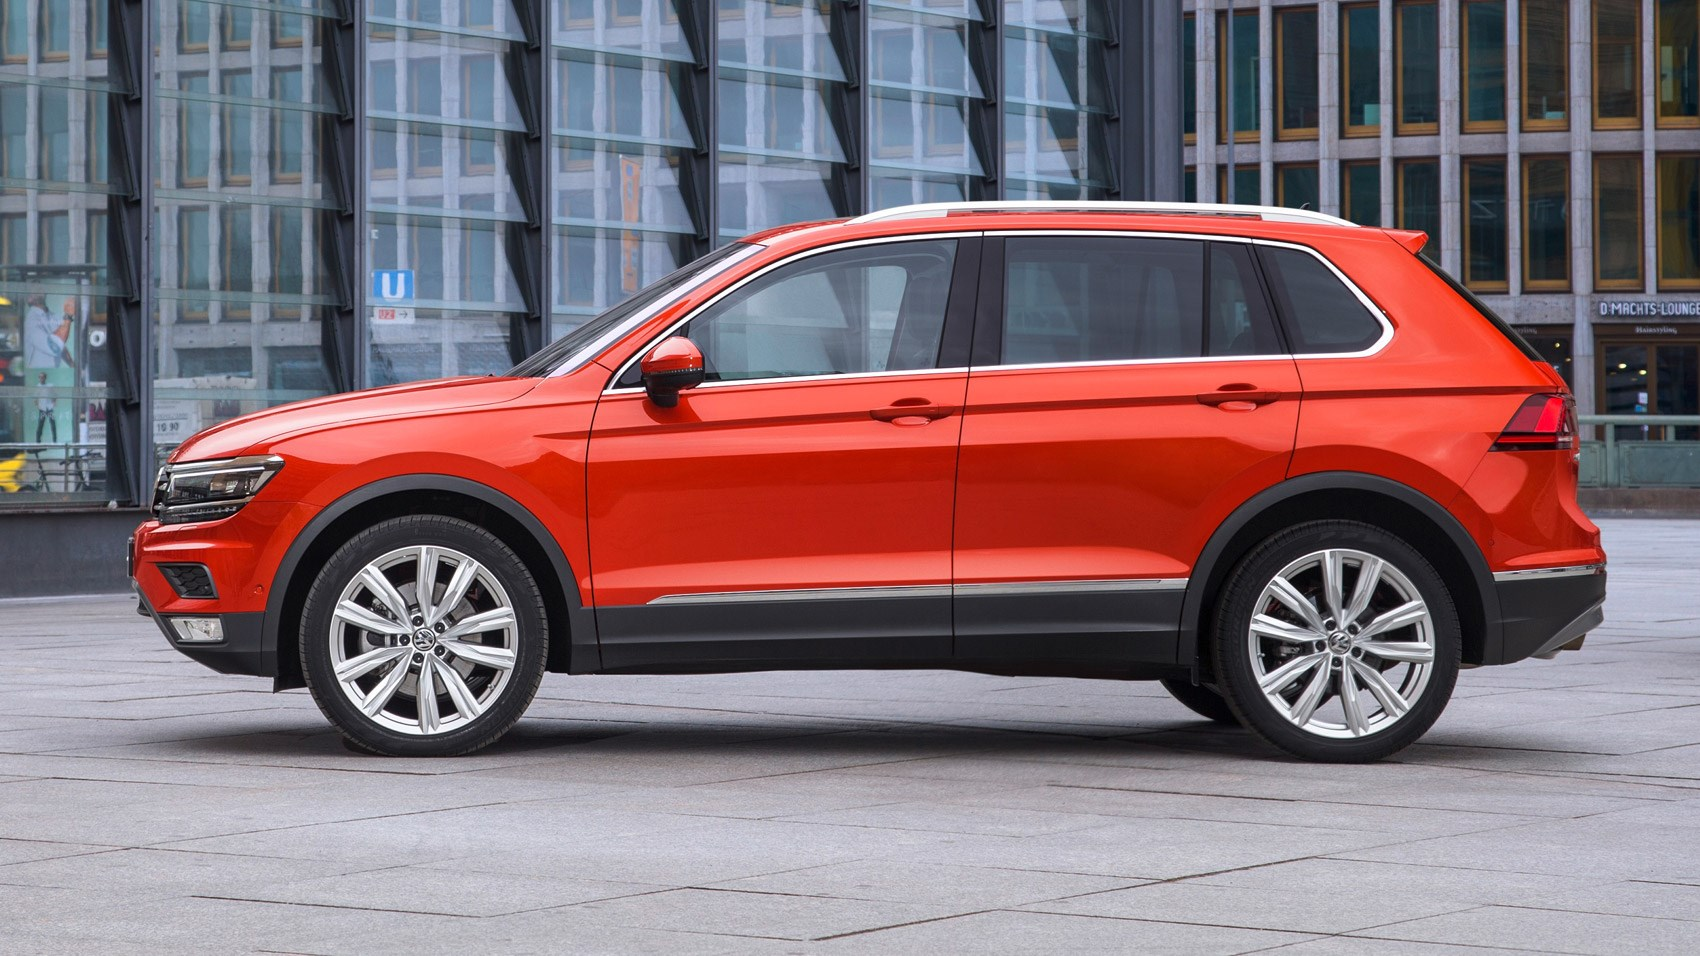 Vw Lease Deals >> VW Tiguan 2.0 TSI 180 Outdoor (2016) review | CAR Magazine